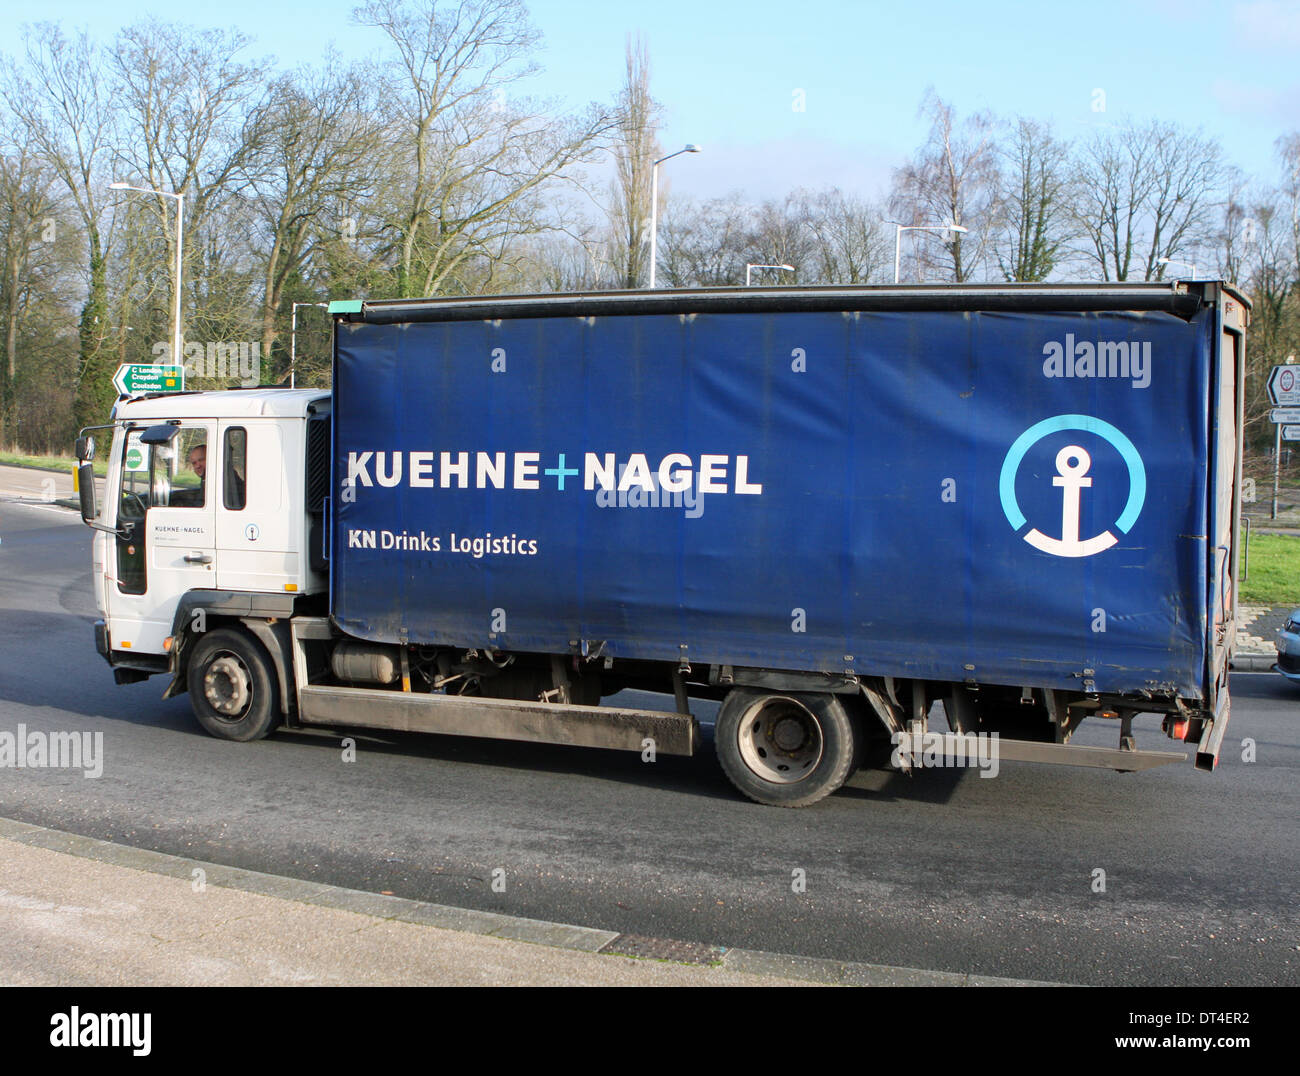 Swiss Kuehne Nagel Stockfotos & Swiss Kuehne Nagel Bilder - Alamy